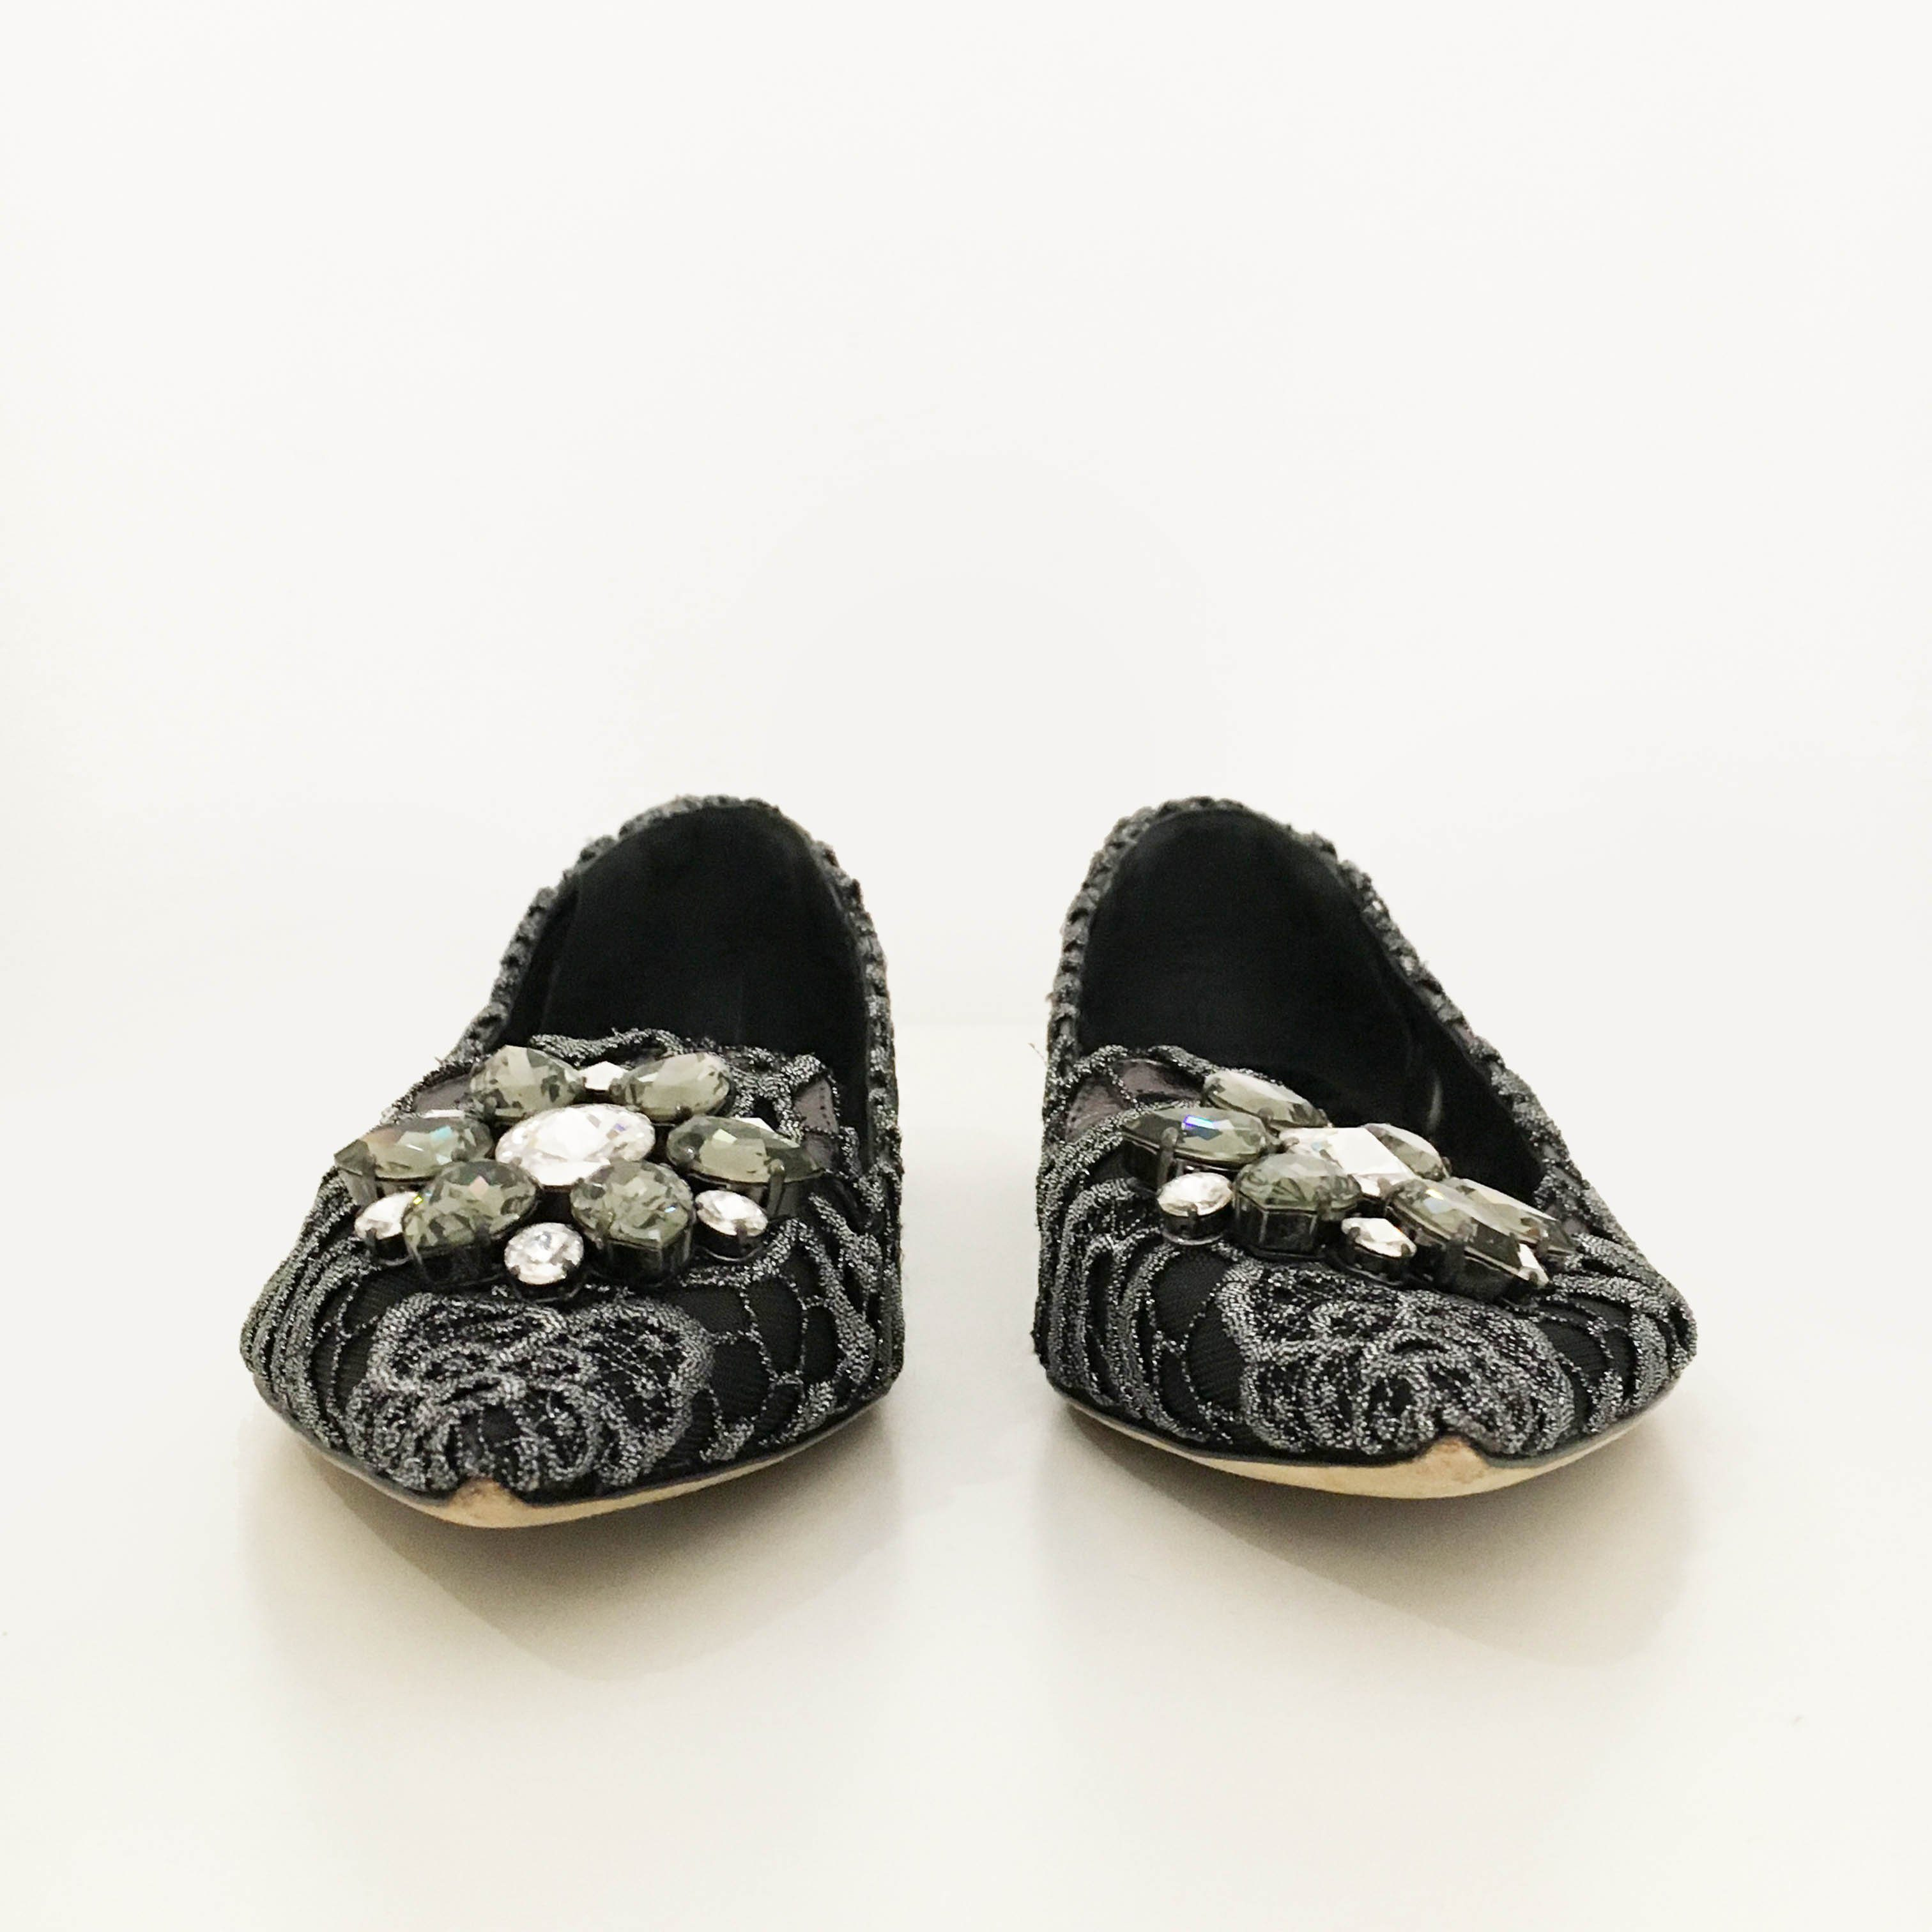 Dolce & Gabbana Crystal Embellished Pointed Flats